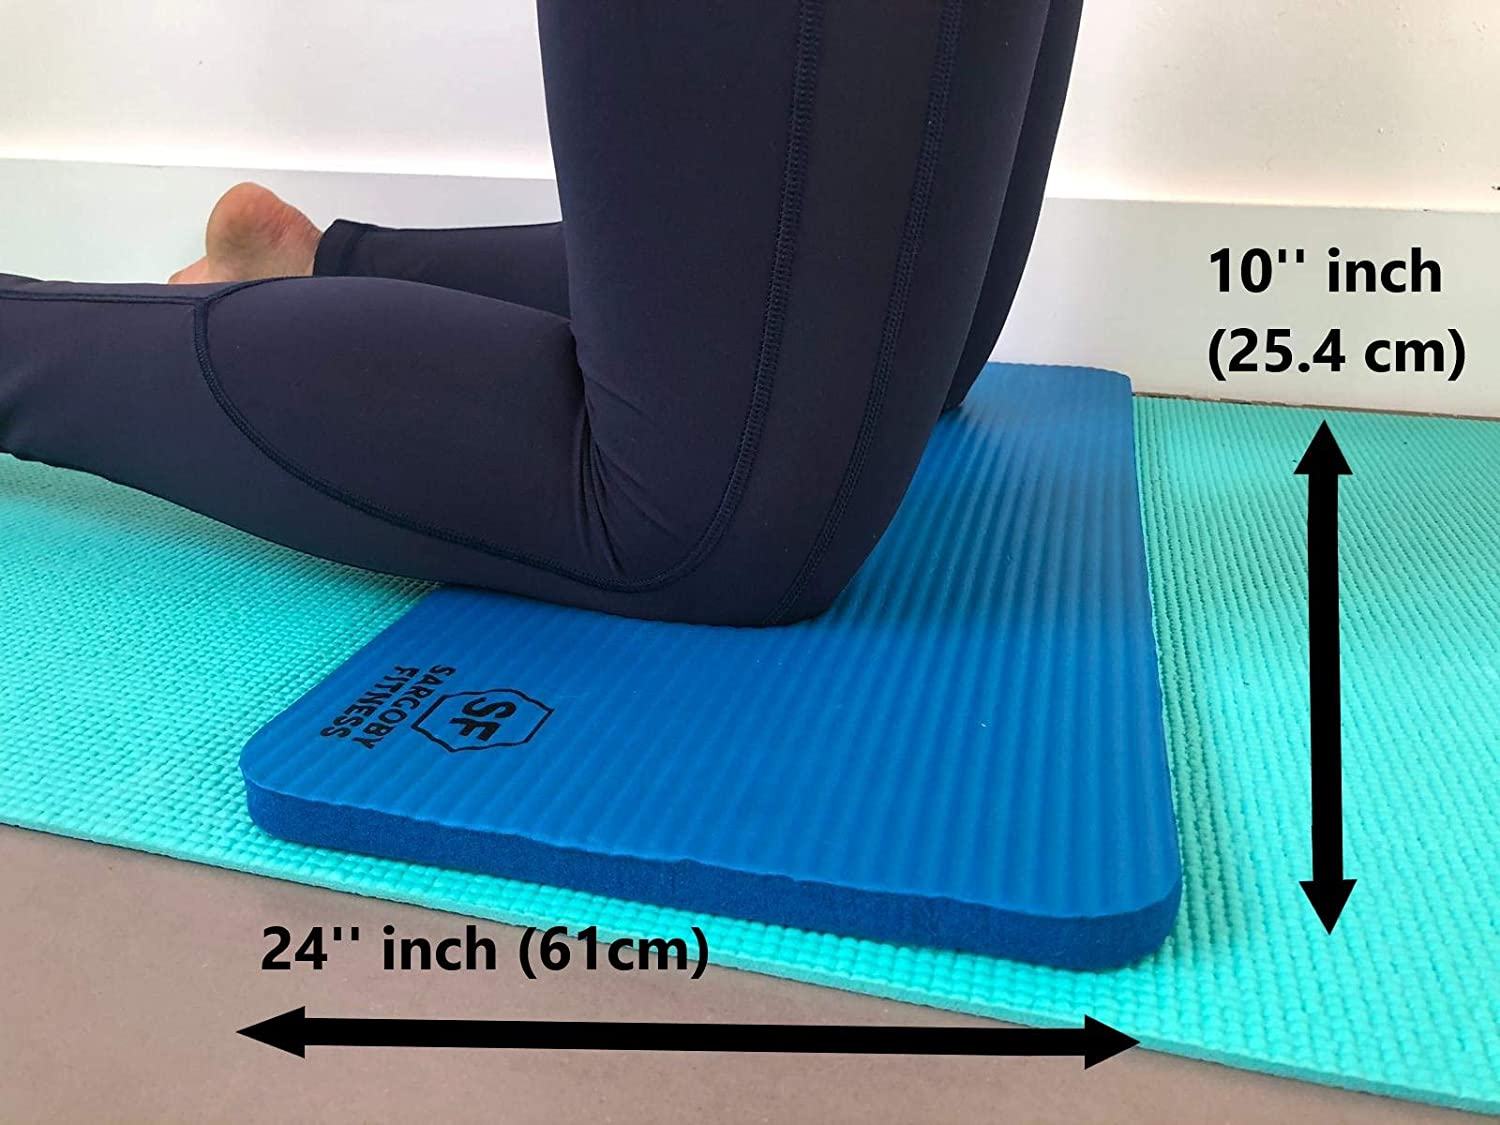 Sargoby Fitness Yoga Knee Pad Cushion 15mm (0.6) Thick | Eliminate Pain & Provide Relief to Knees Elbows Forearms & Wrists | Yoga Knee mat Includes ...